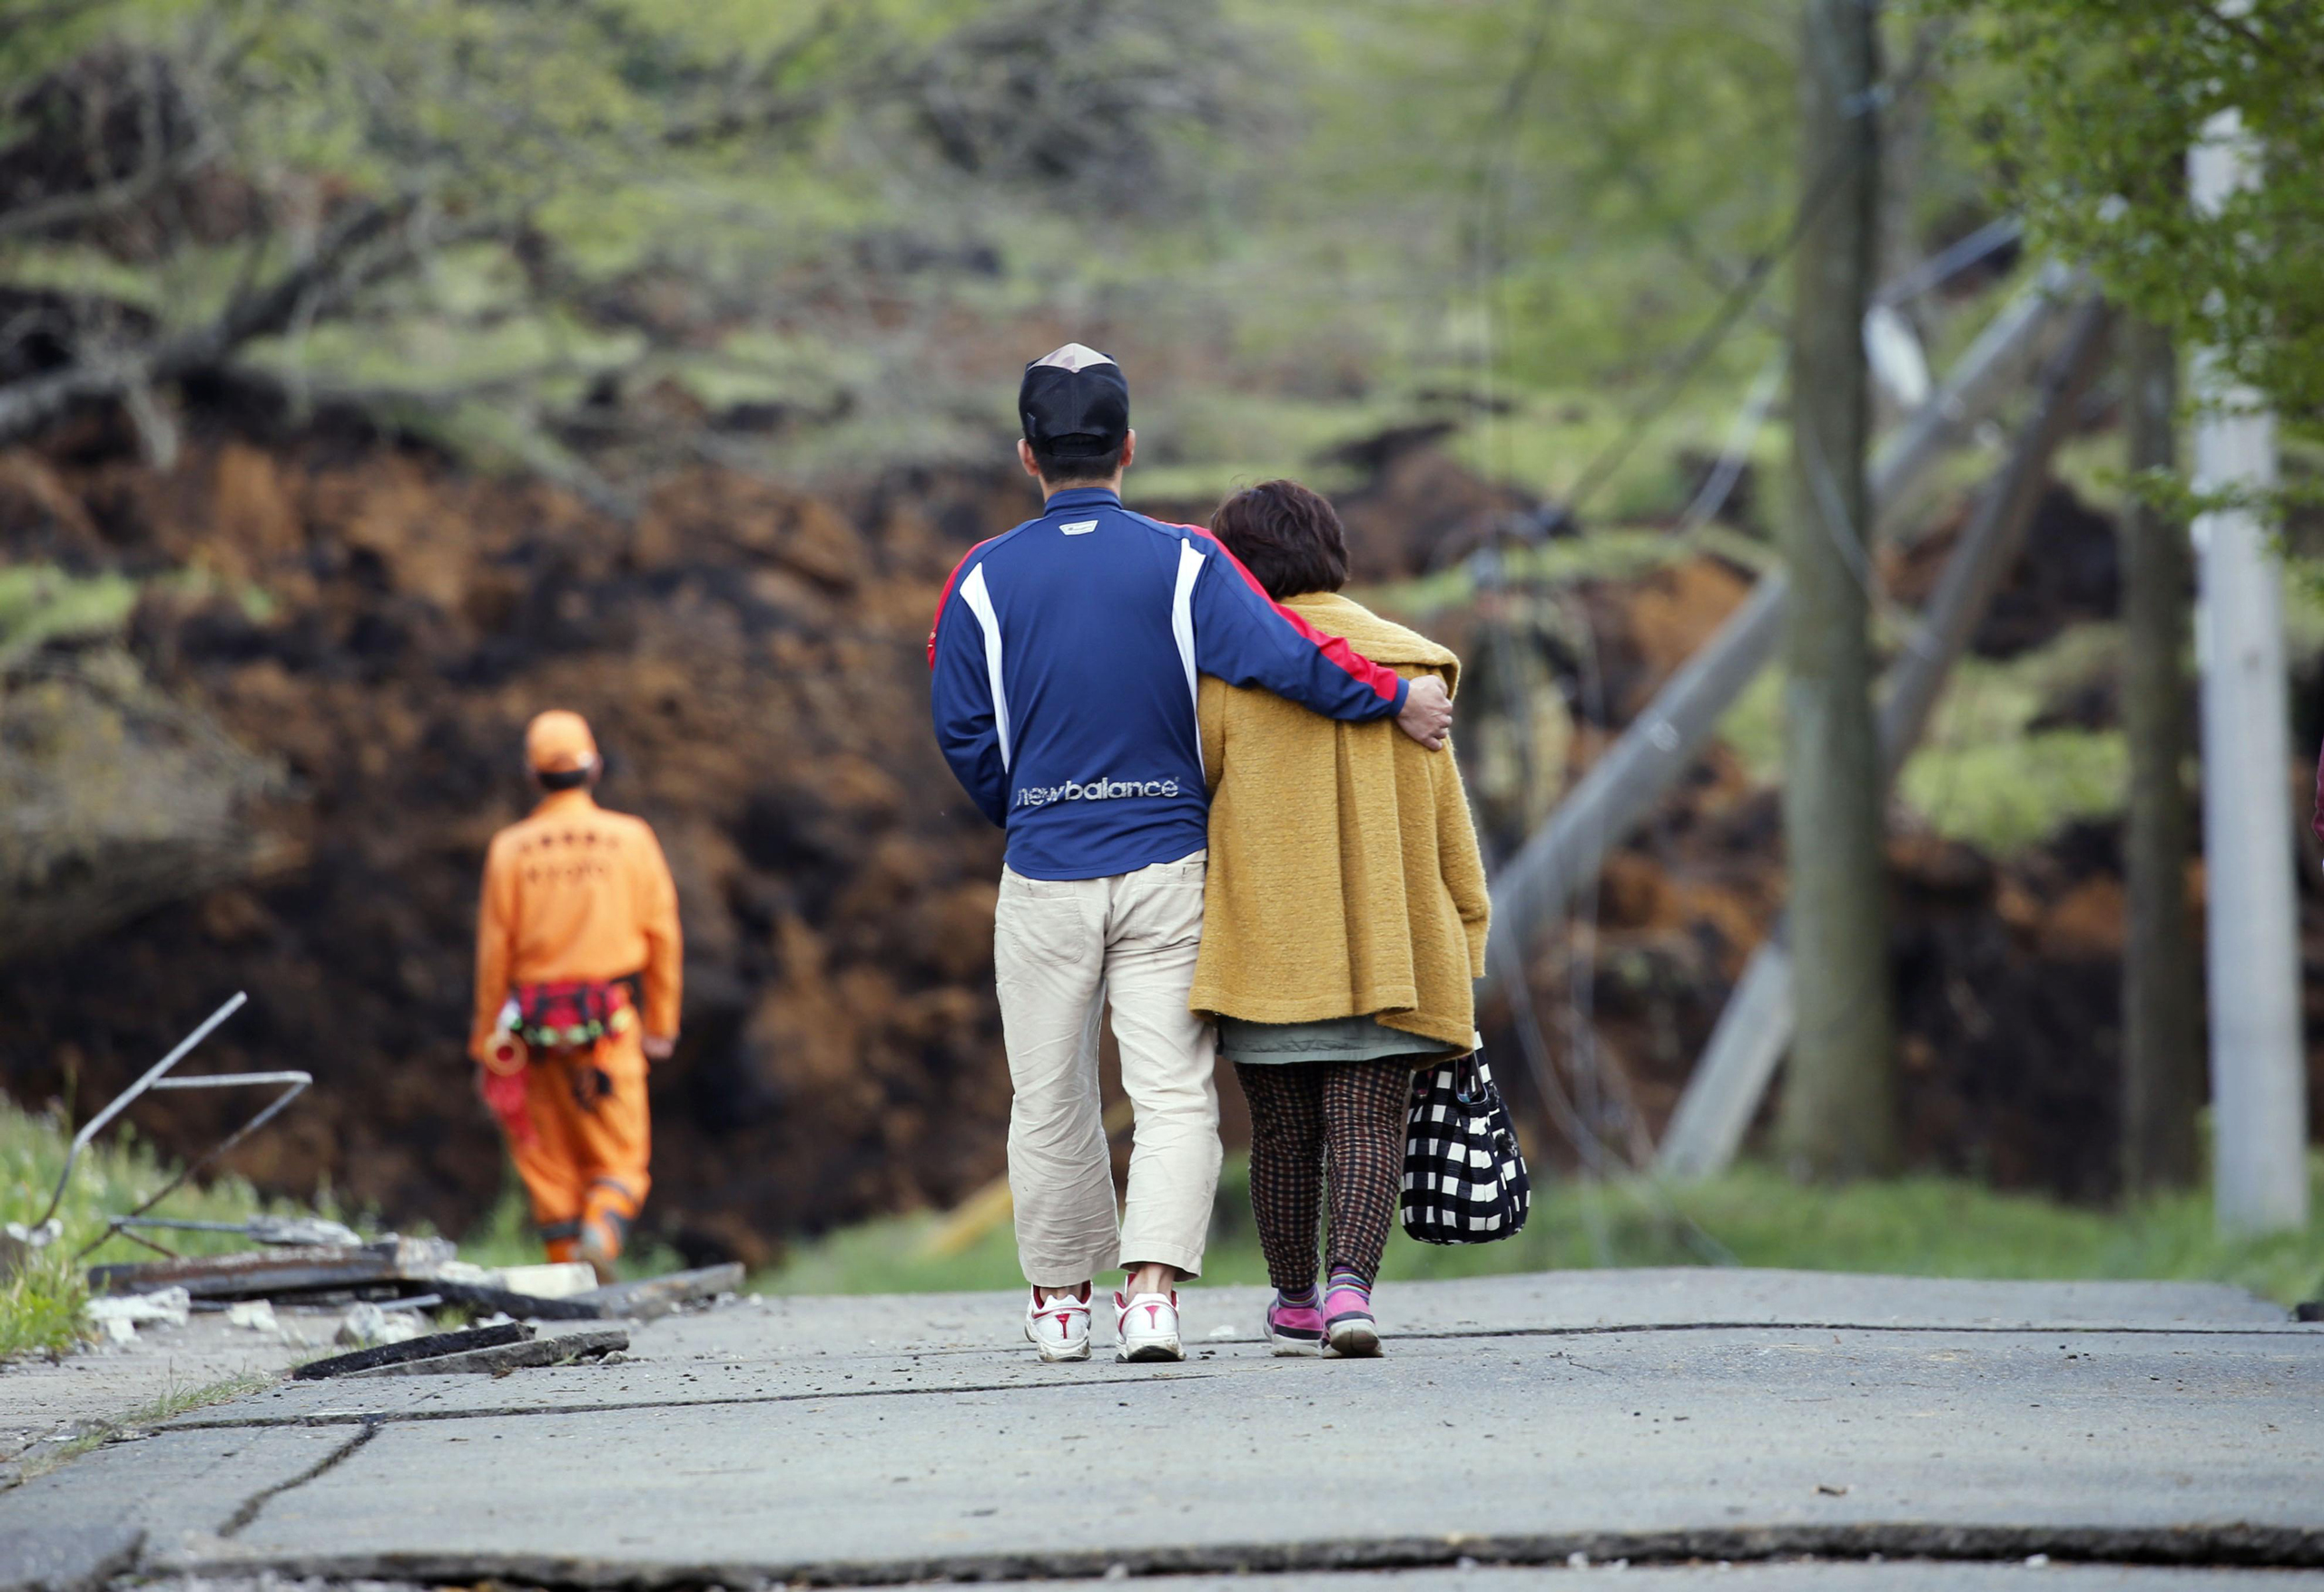 A man hugs his mother as they leave their house buried in a landslide caused by earthquakes in Minamiaso, Japan, on April 17, 2016.